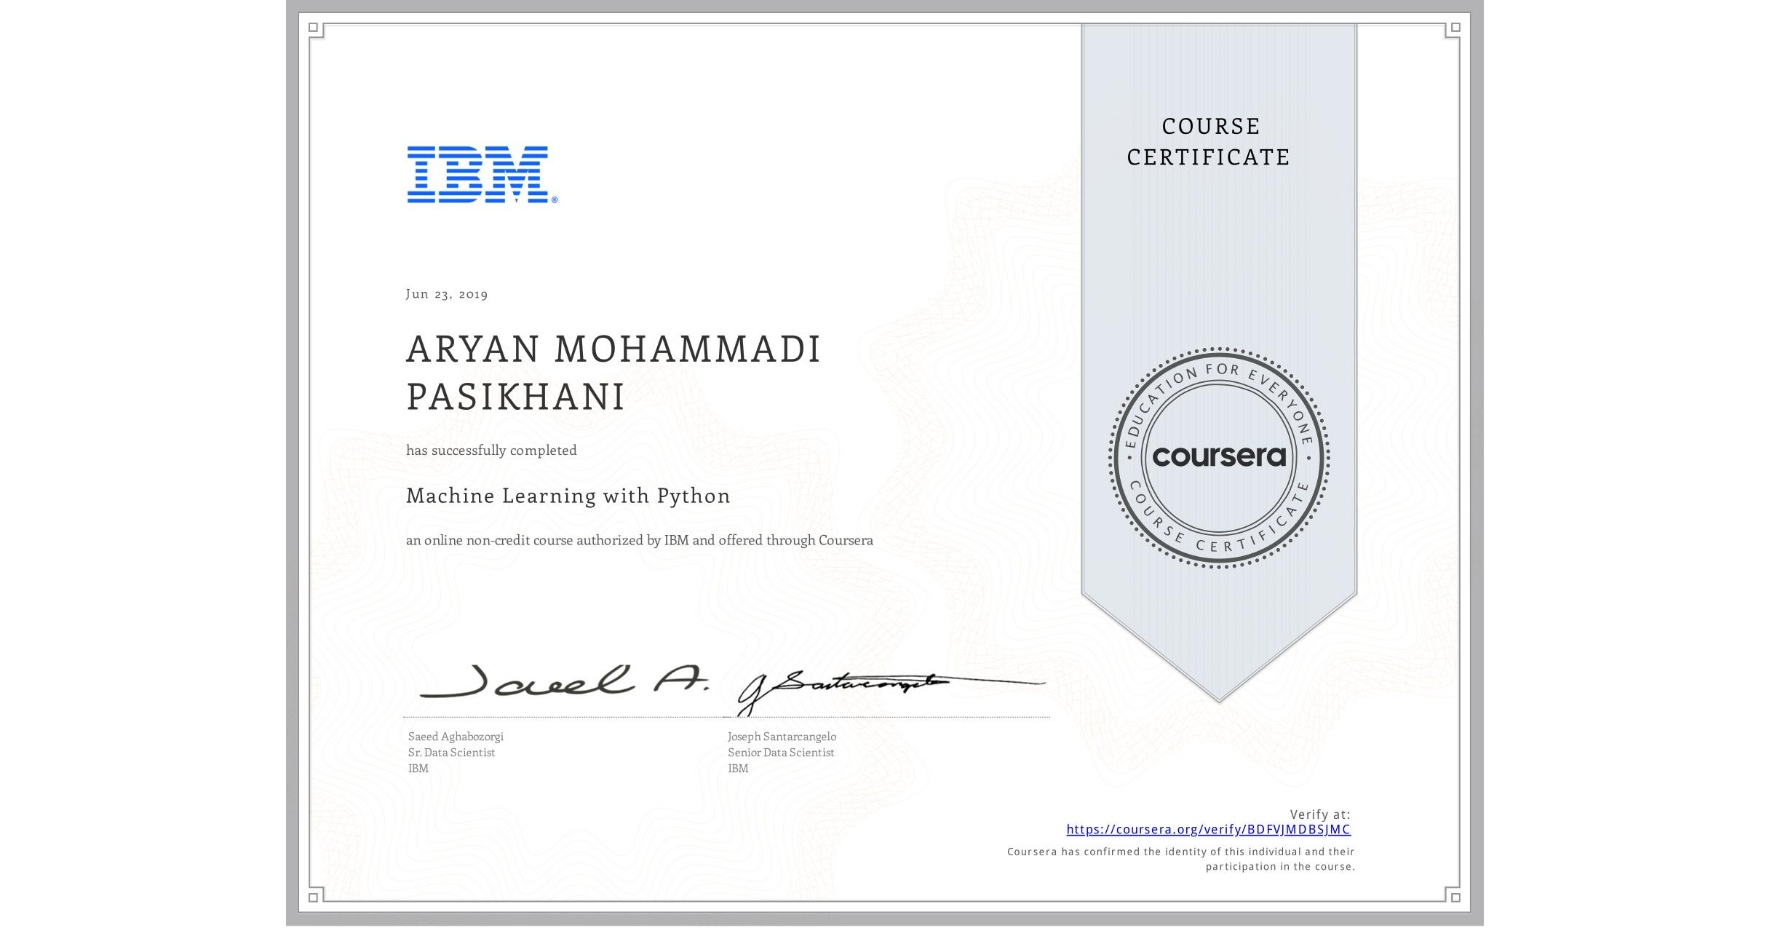 View certificate for ARYAN MOHAMMADI PASIKHANI, Machine Learning with Python, an online non-credit course authorized by IBM and offered through Coursera